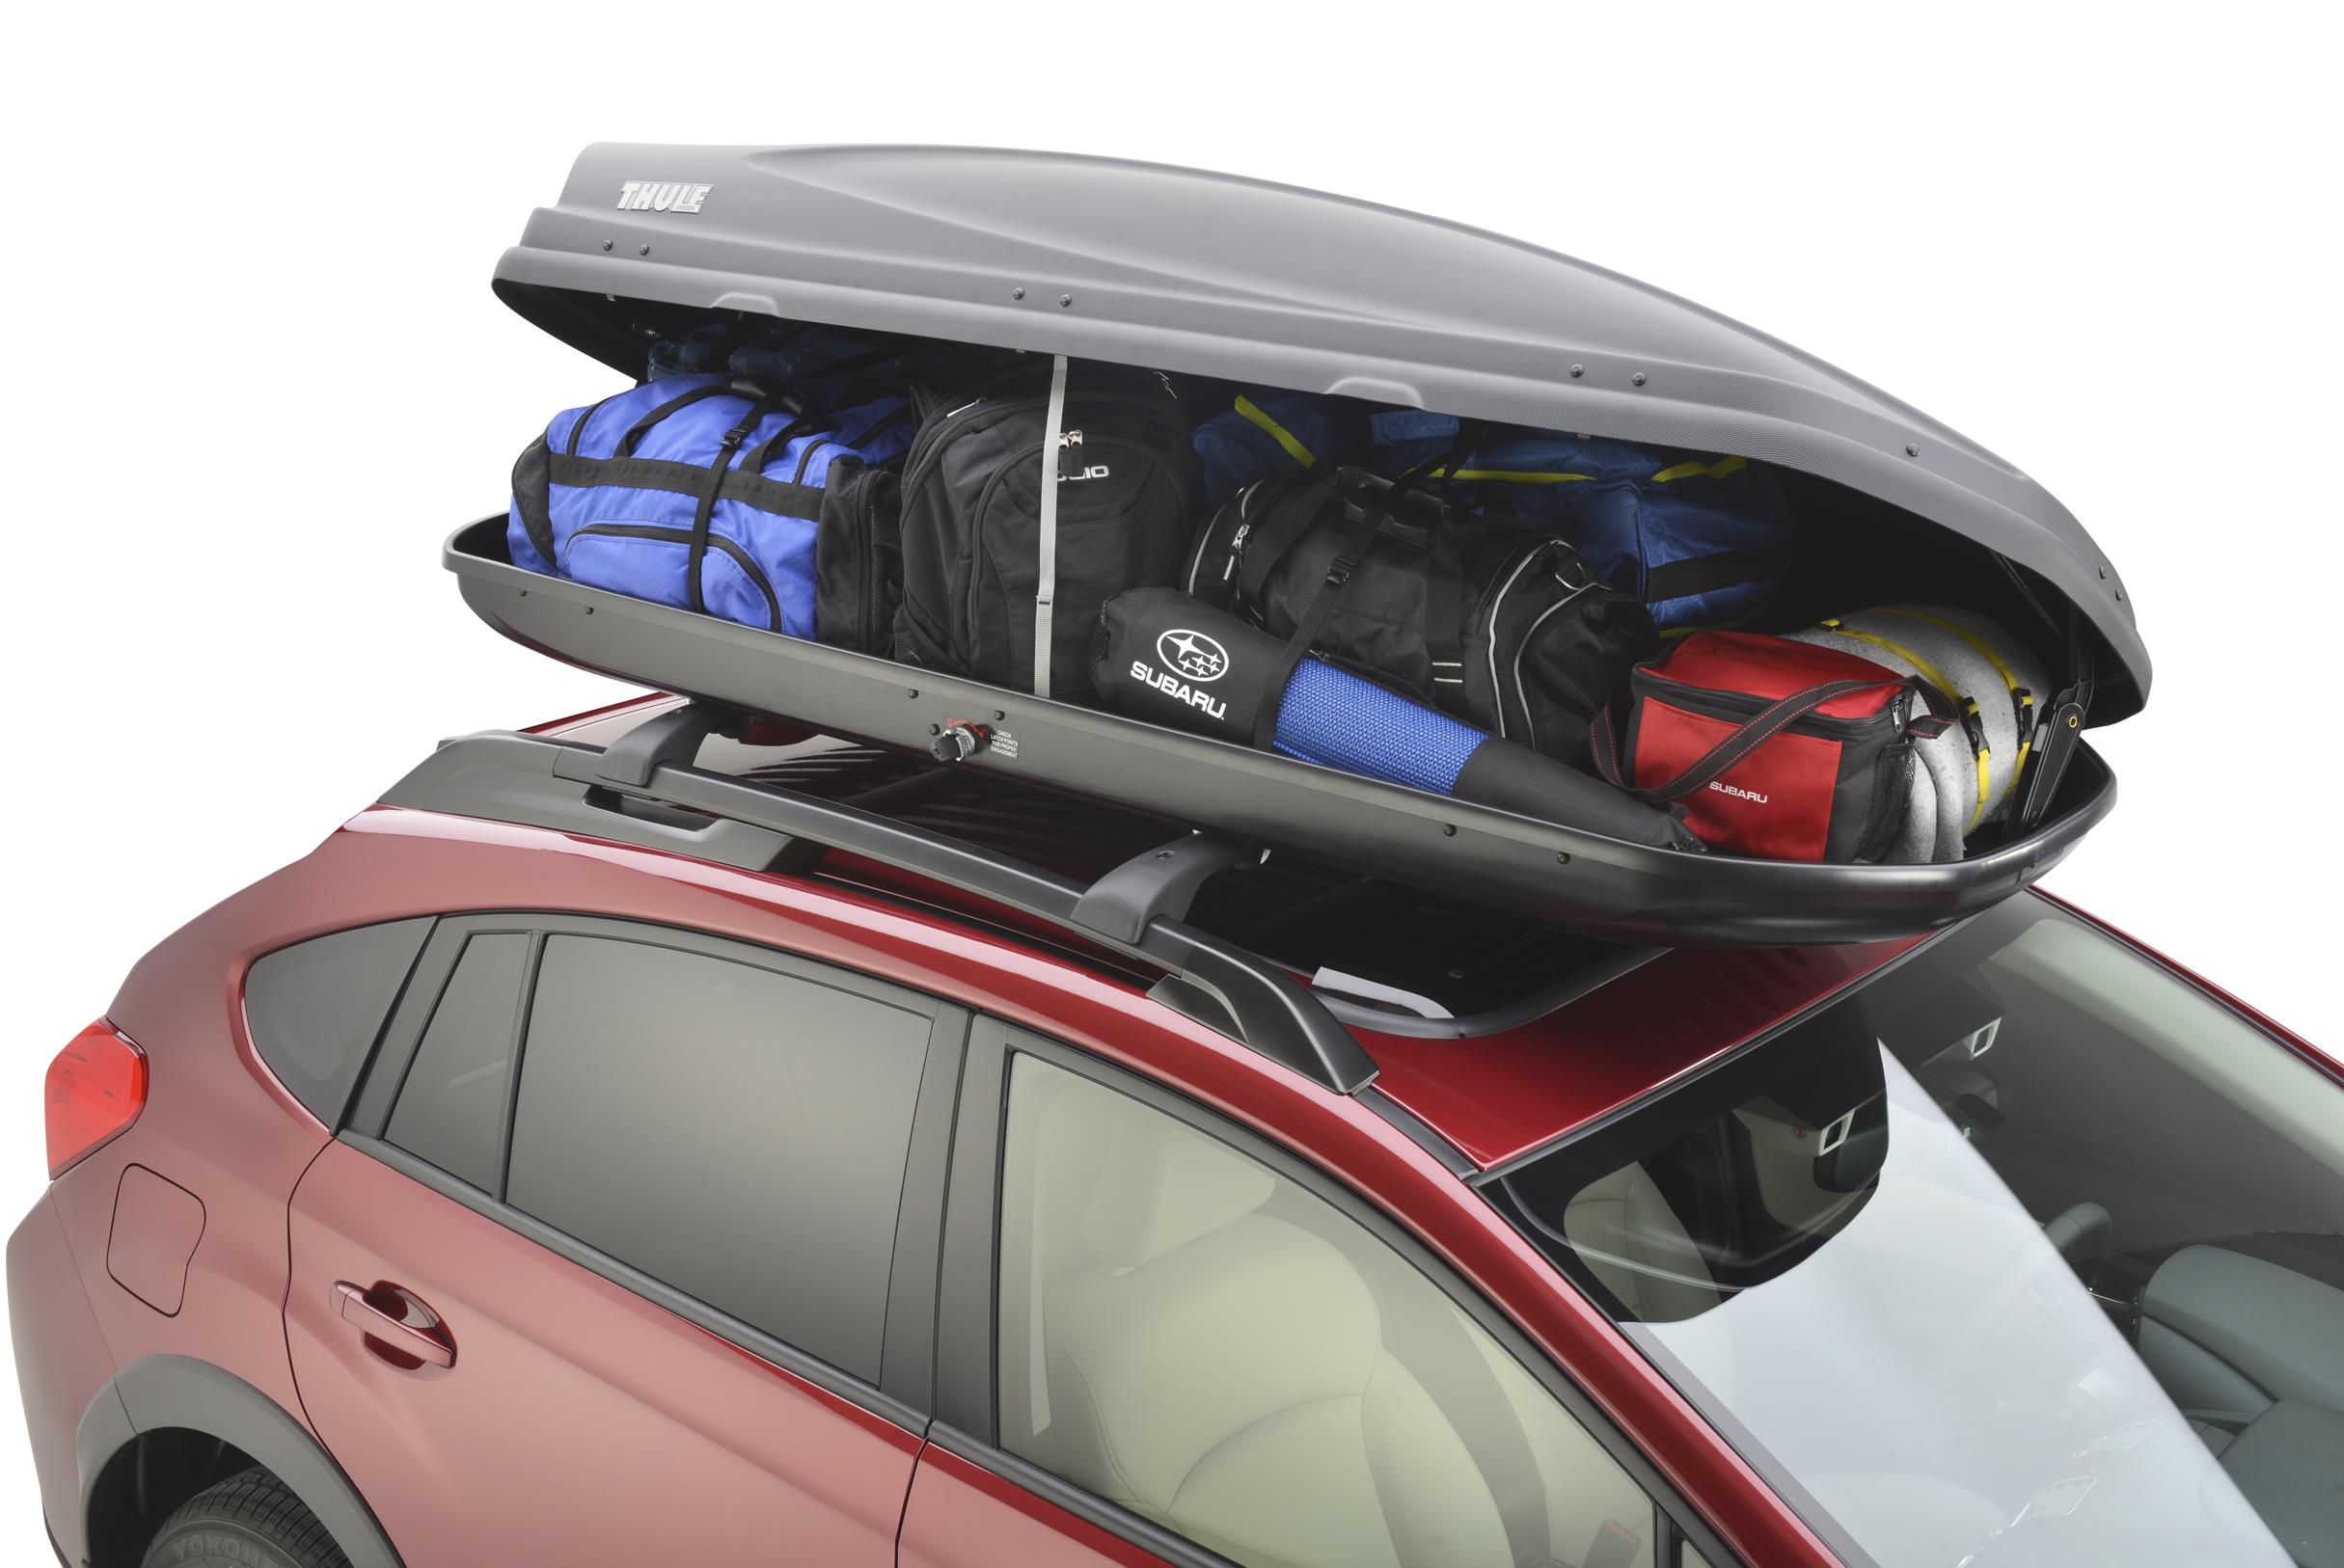 2017 subaru outback thule roof cargo carrier extended. Black Bedroom Furniture Sets. Home Design Ideas